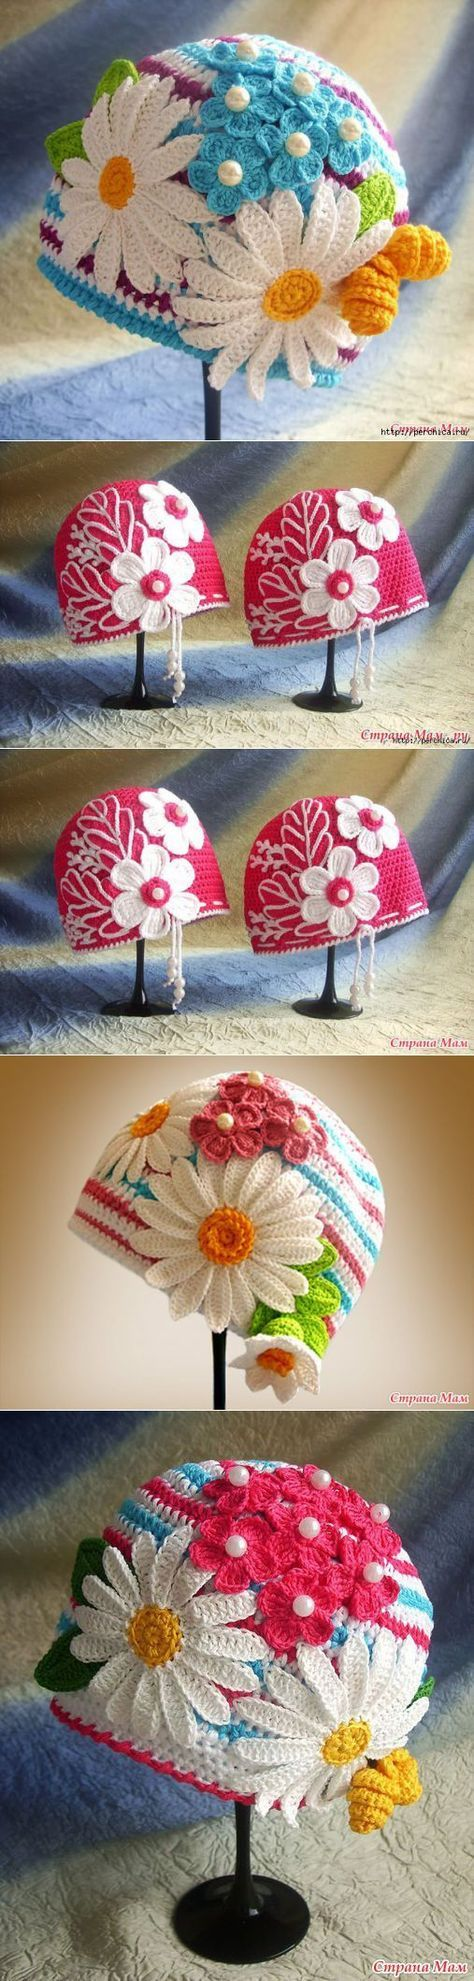 My nieces would love these and I could make them each different to match their personalities.